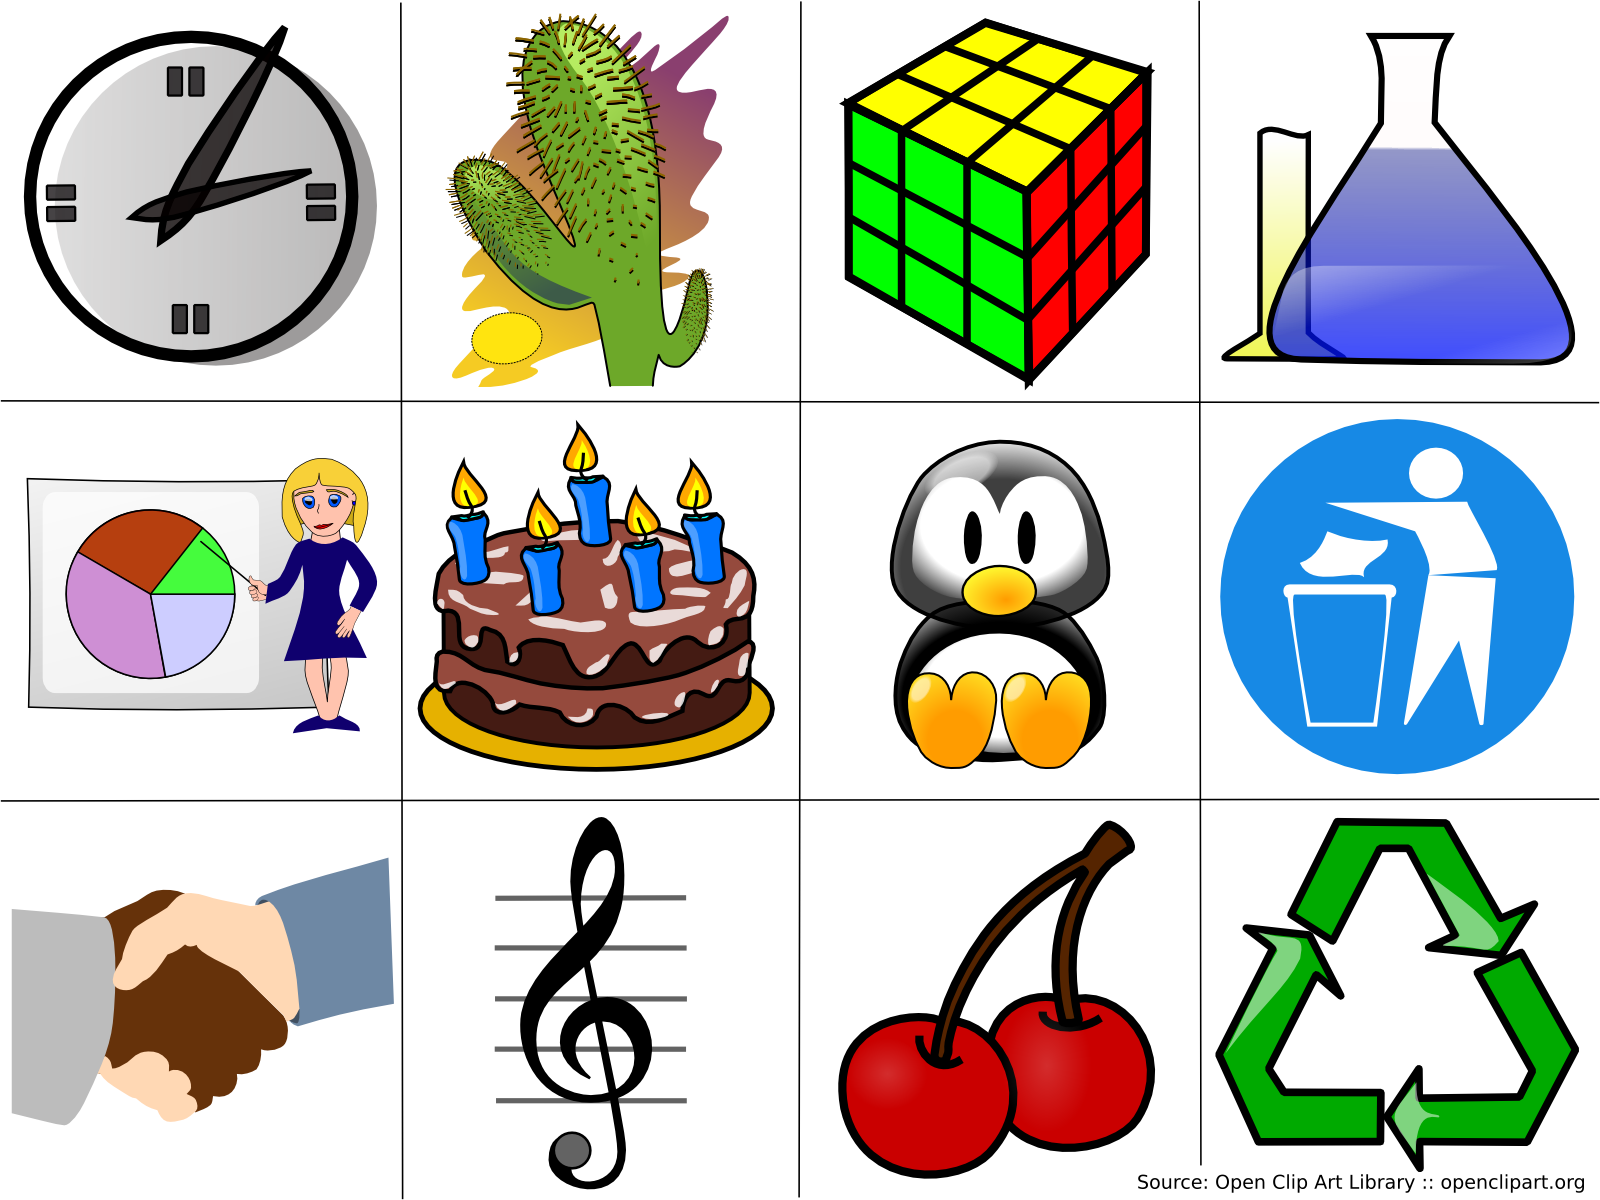 corel clipart library - photo #7